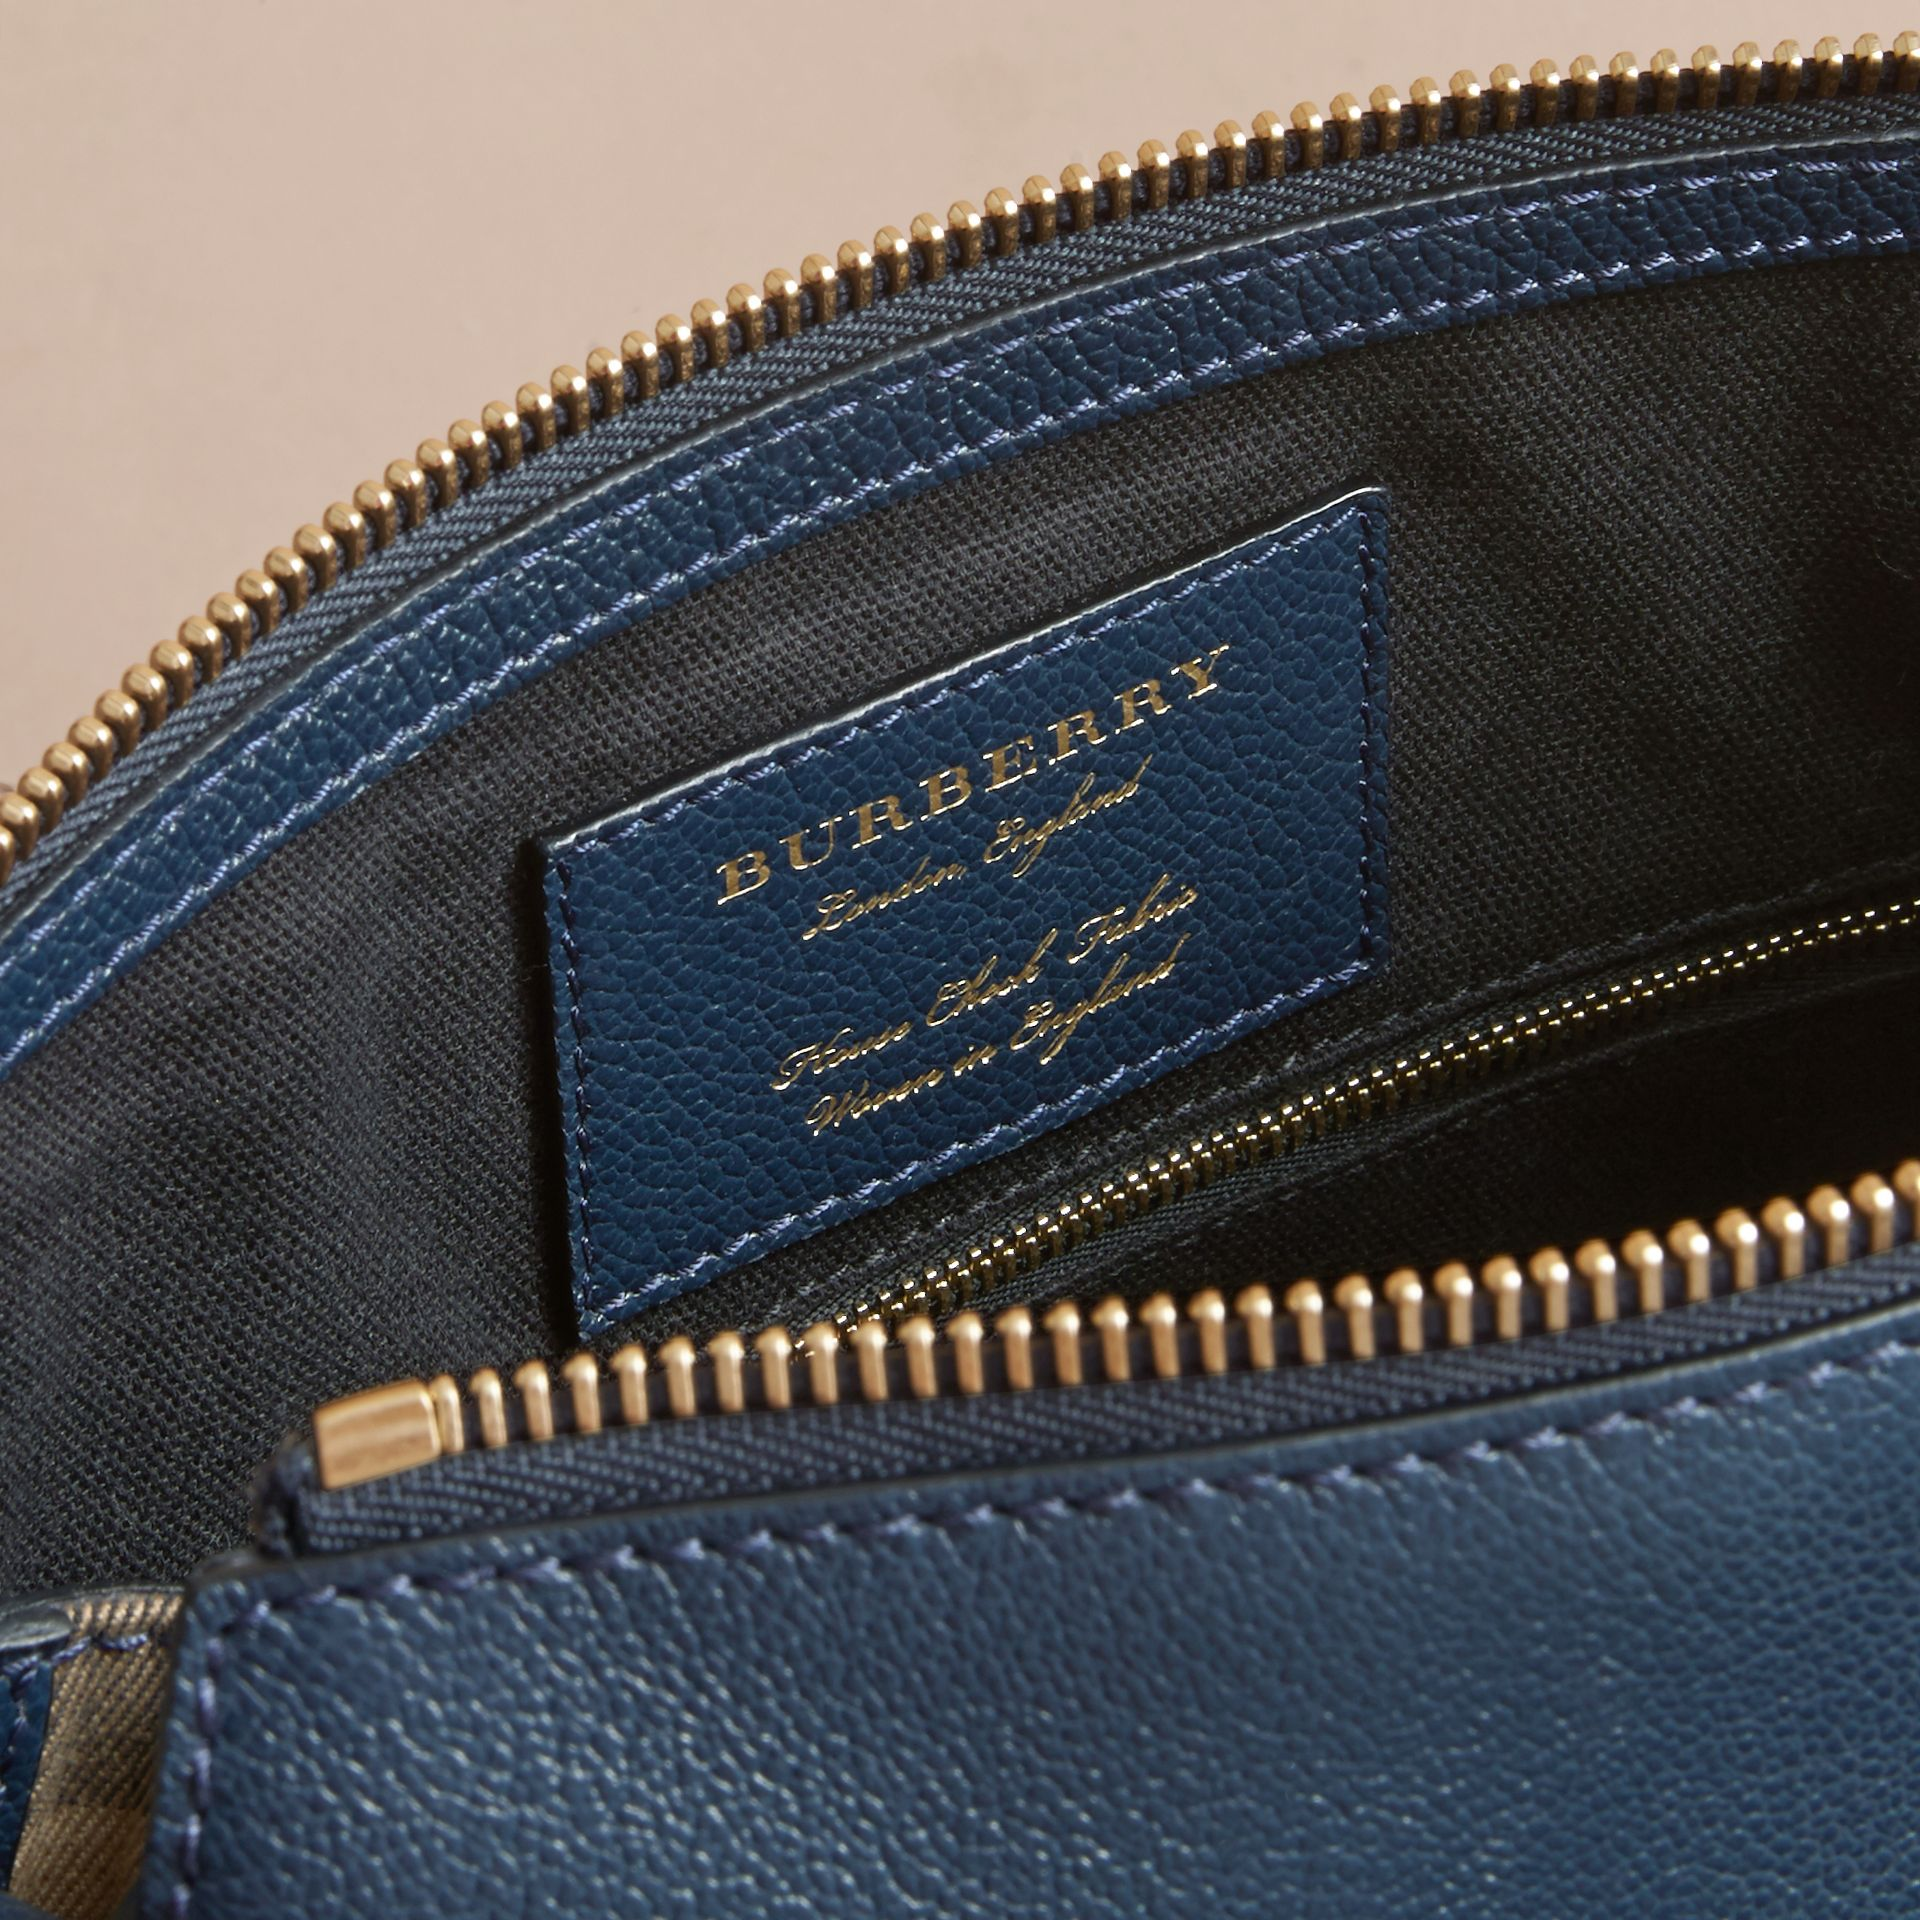 Buckle Detail Leather and House Check Crossbody Bag in Blue Carbon - Women | Burberry Australia - gallery image 5